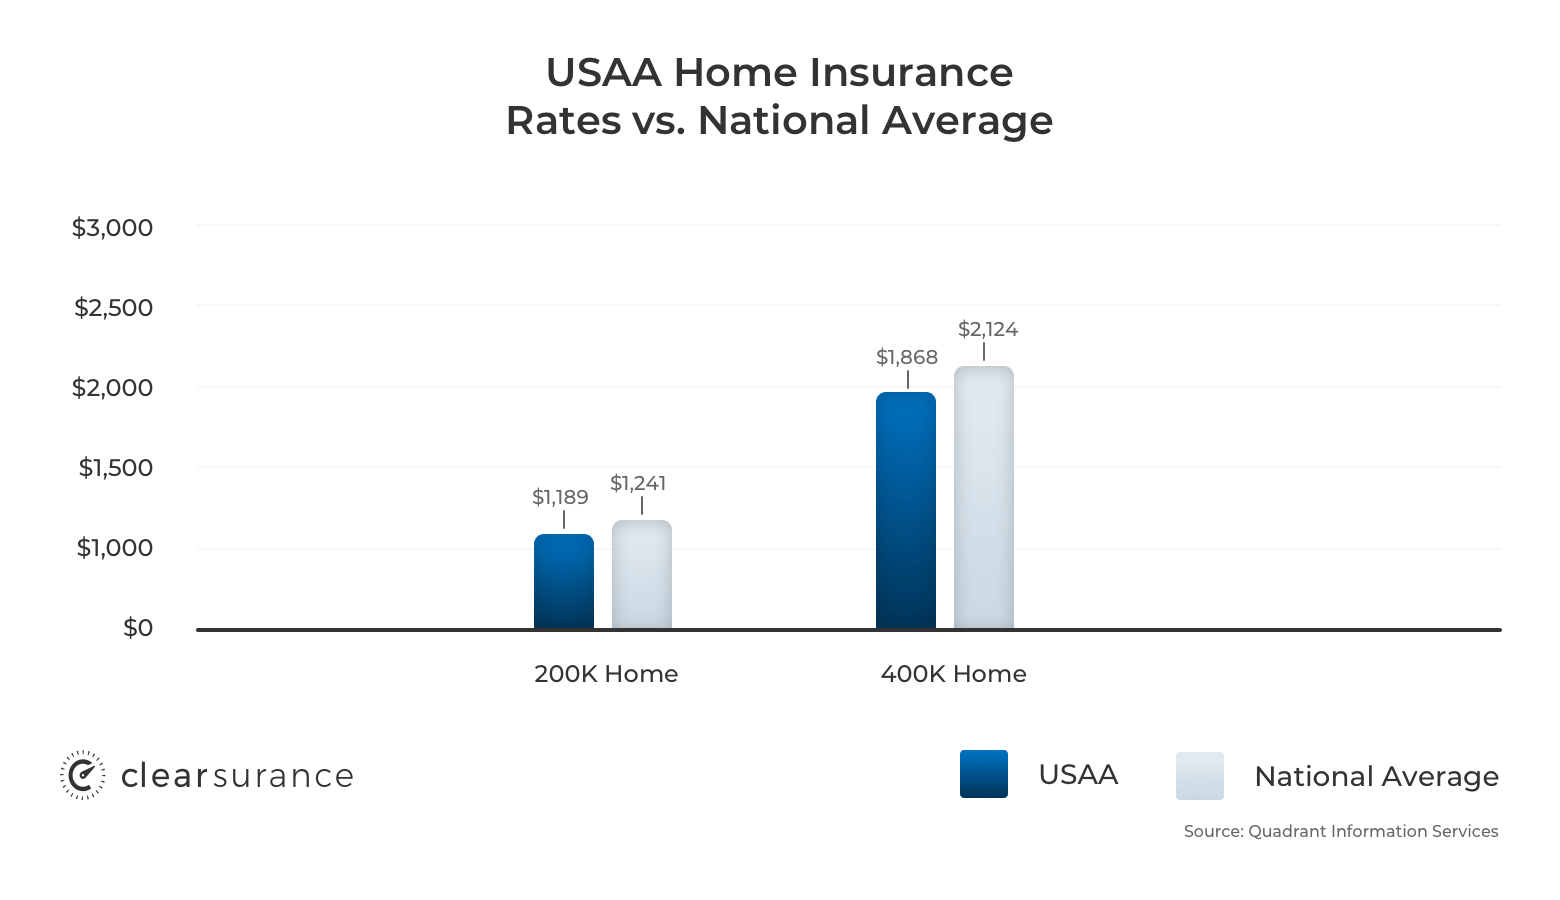 USAA home insurance rates